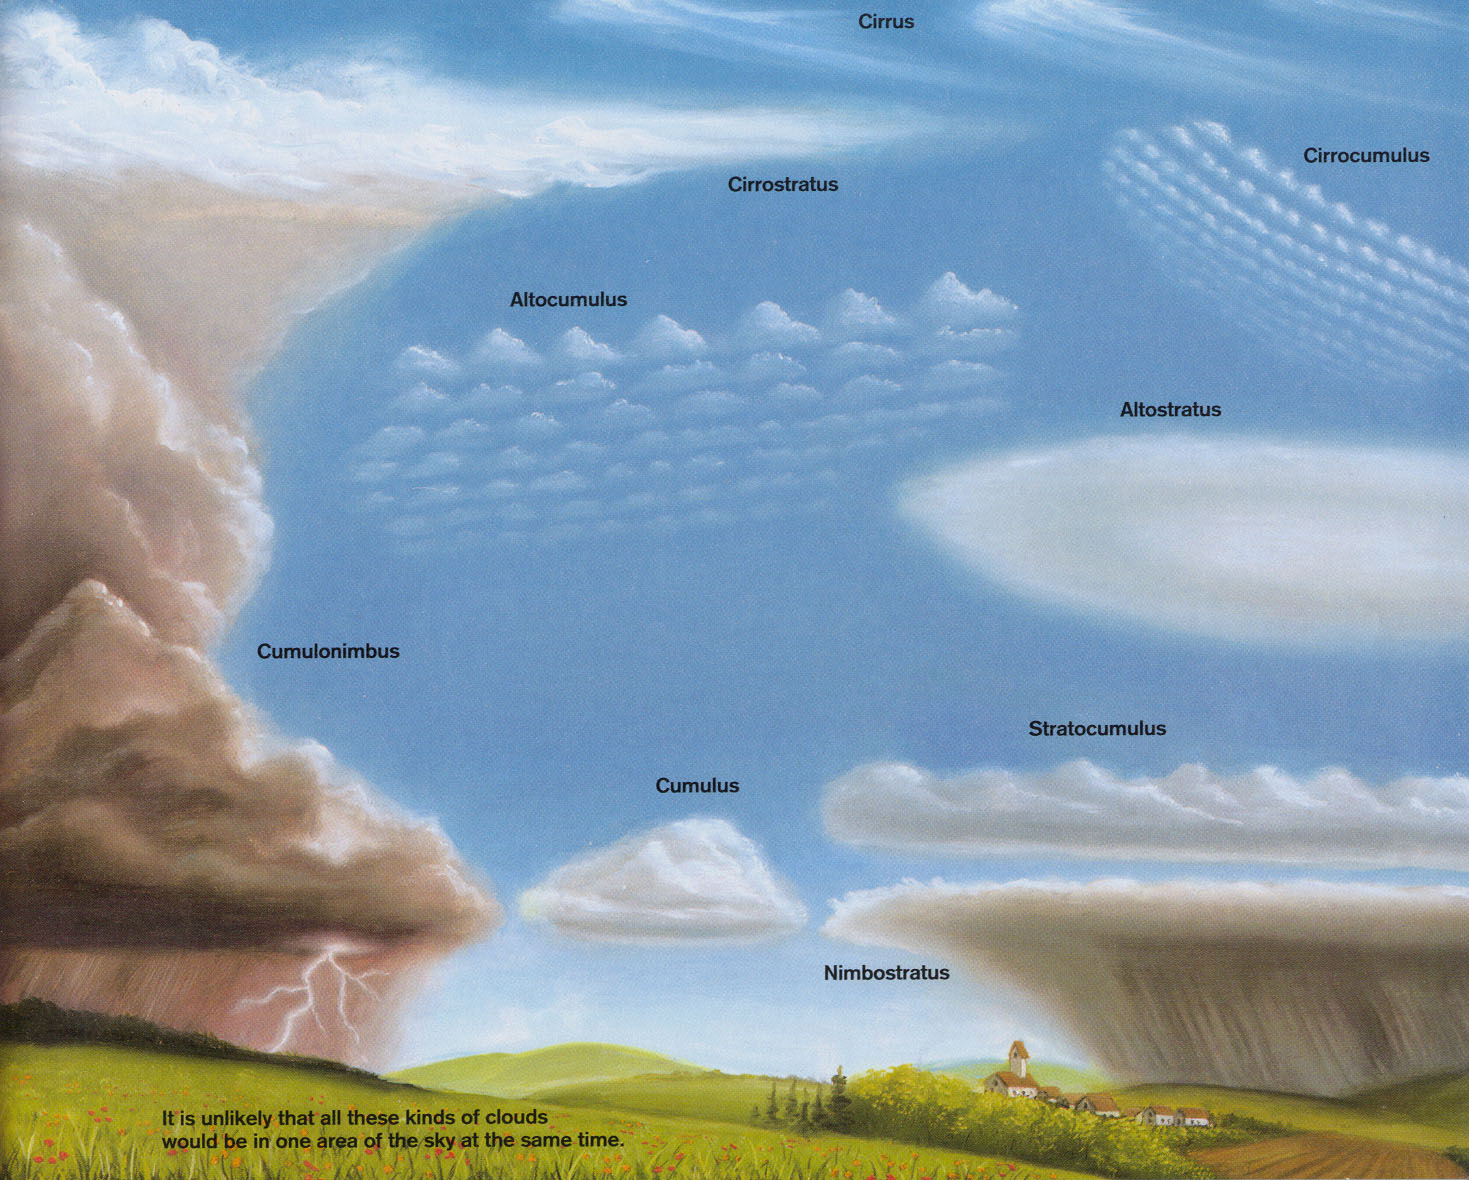 Pictures of the Different Clouds http://www.o2learning.org/staff/jason_palmer/es_folder/unit_6/es_u6_l1.htm